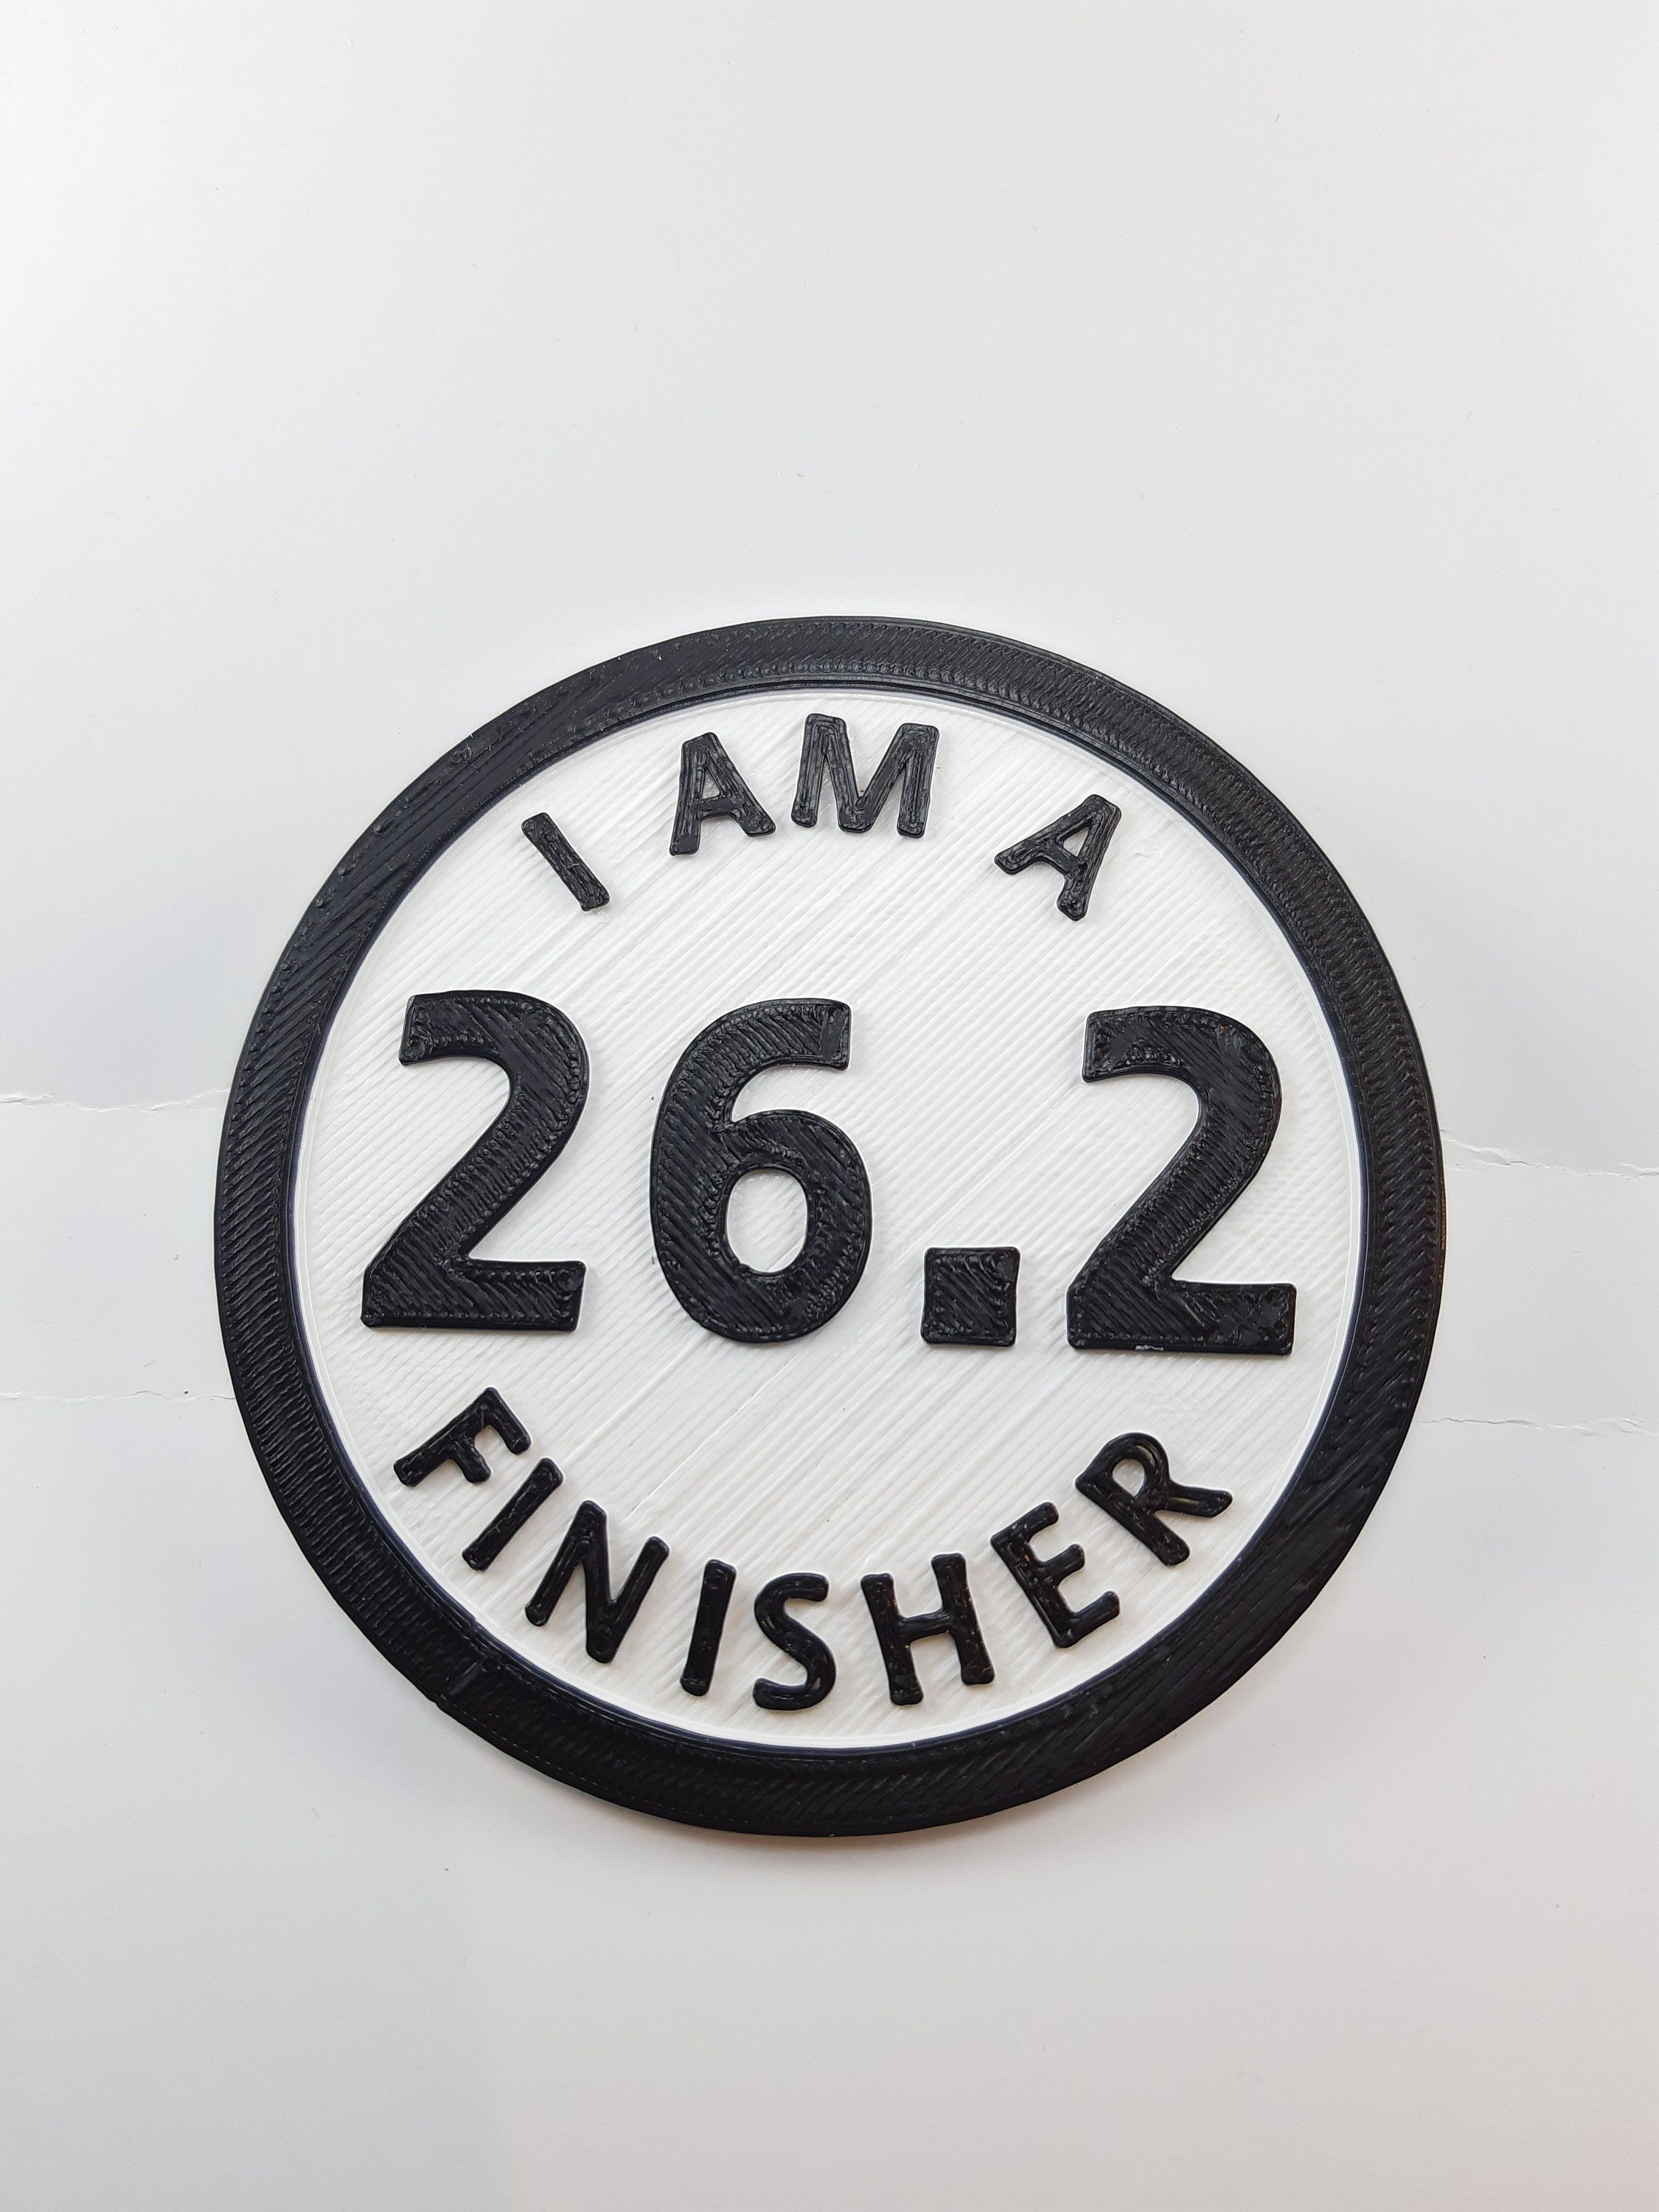 Drink Coasters Just For Runners Show Off Your Run Accomplishments All To See Makes A Great Christmas Or Birthday Gift 3D Printed By Sprdesign On